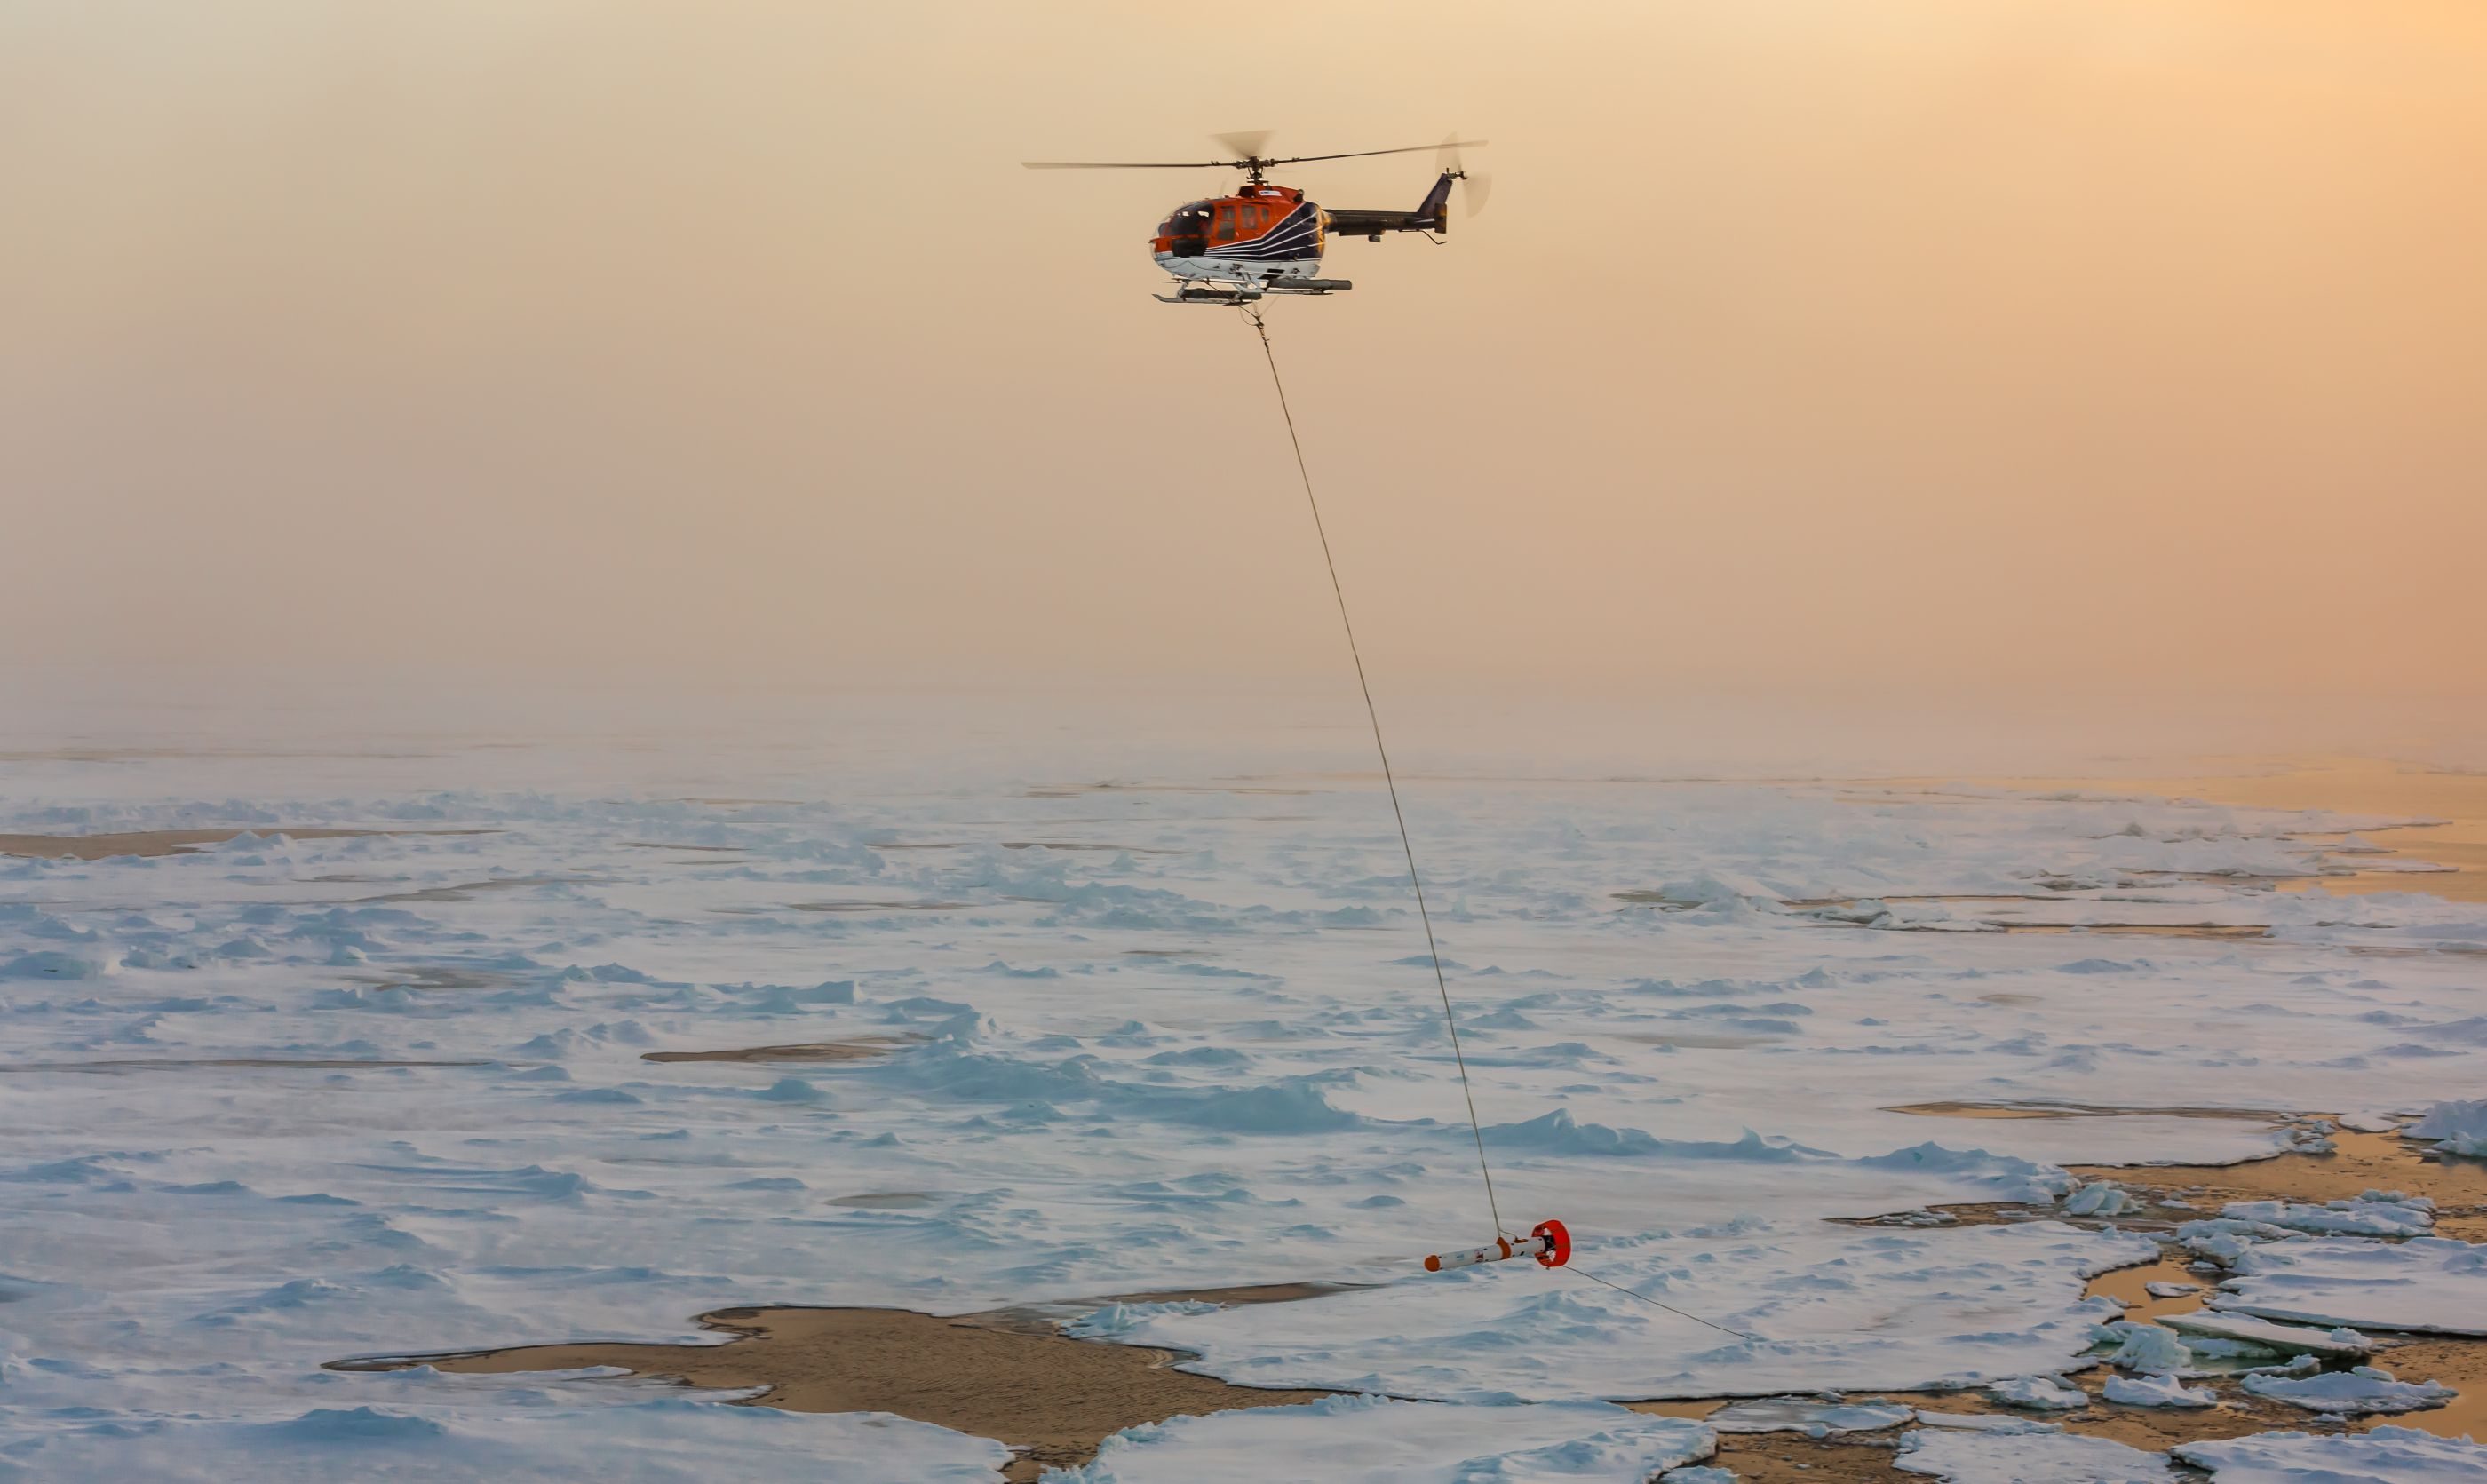 EM-Bird zur Eisdickenbestimmung im Einsatz.   EM-Bird for ice thickness measurements in operation.